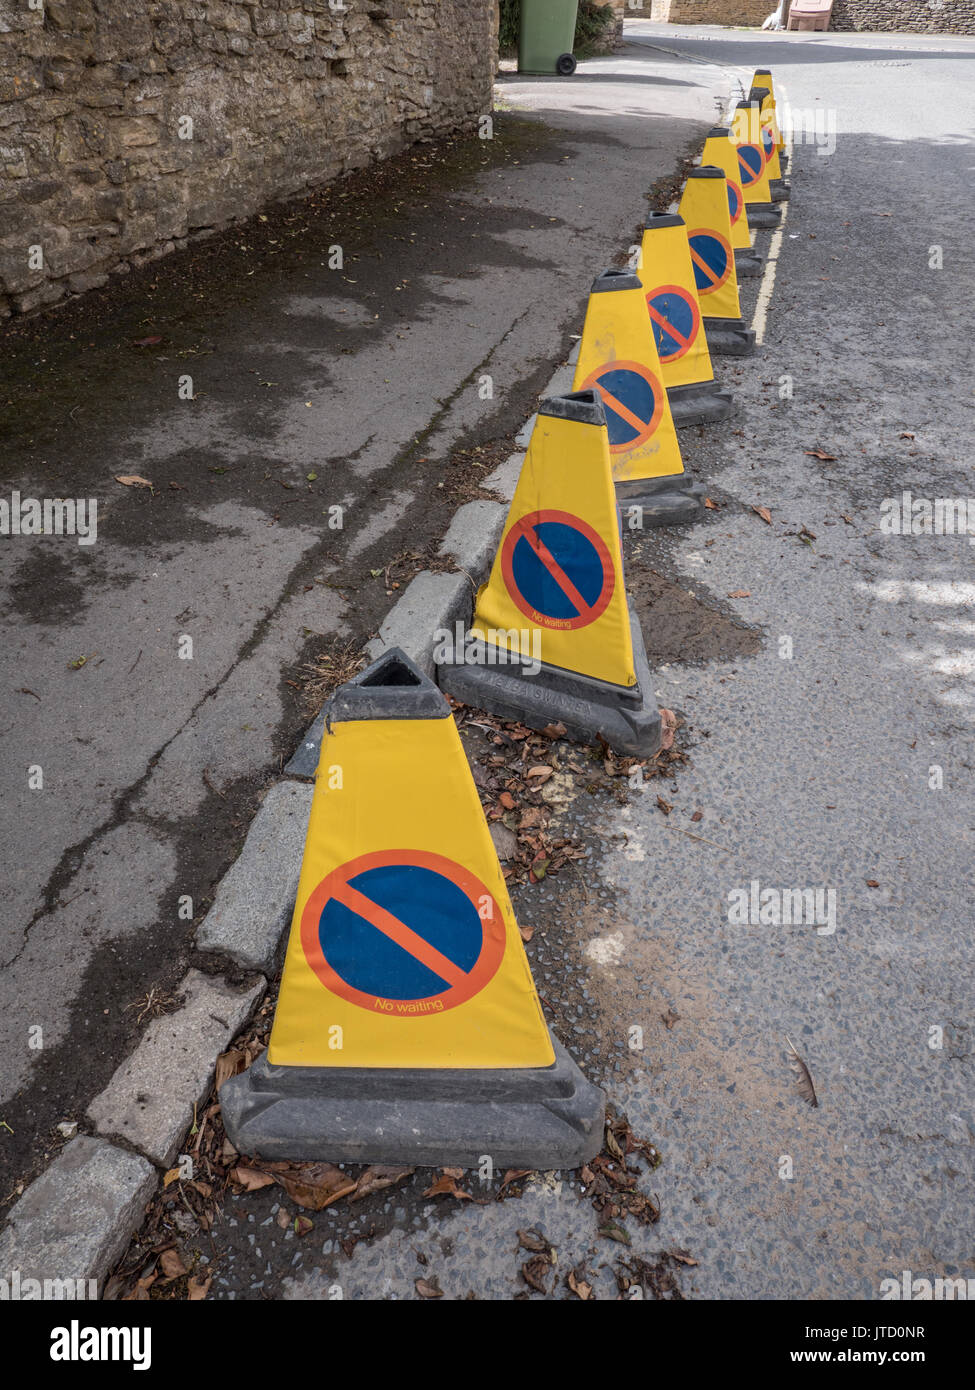 No waiting cones in a row on a side street in England. United Kingdom. - Stock Image